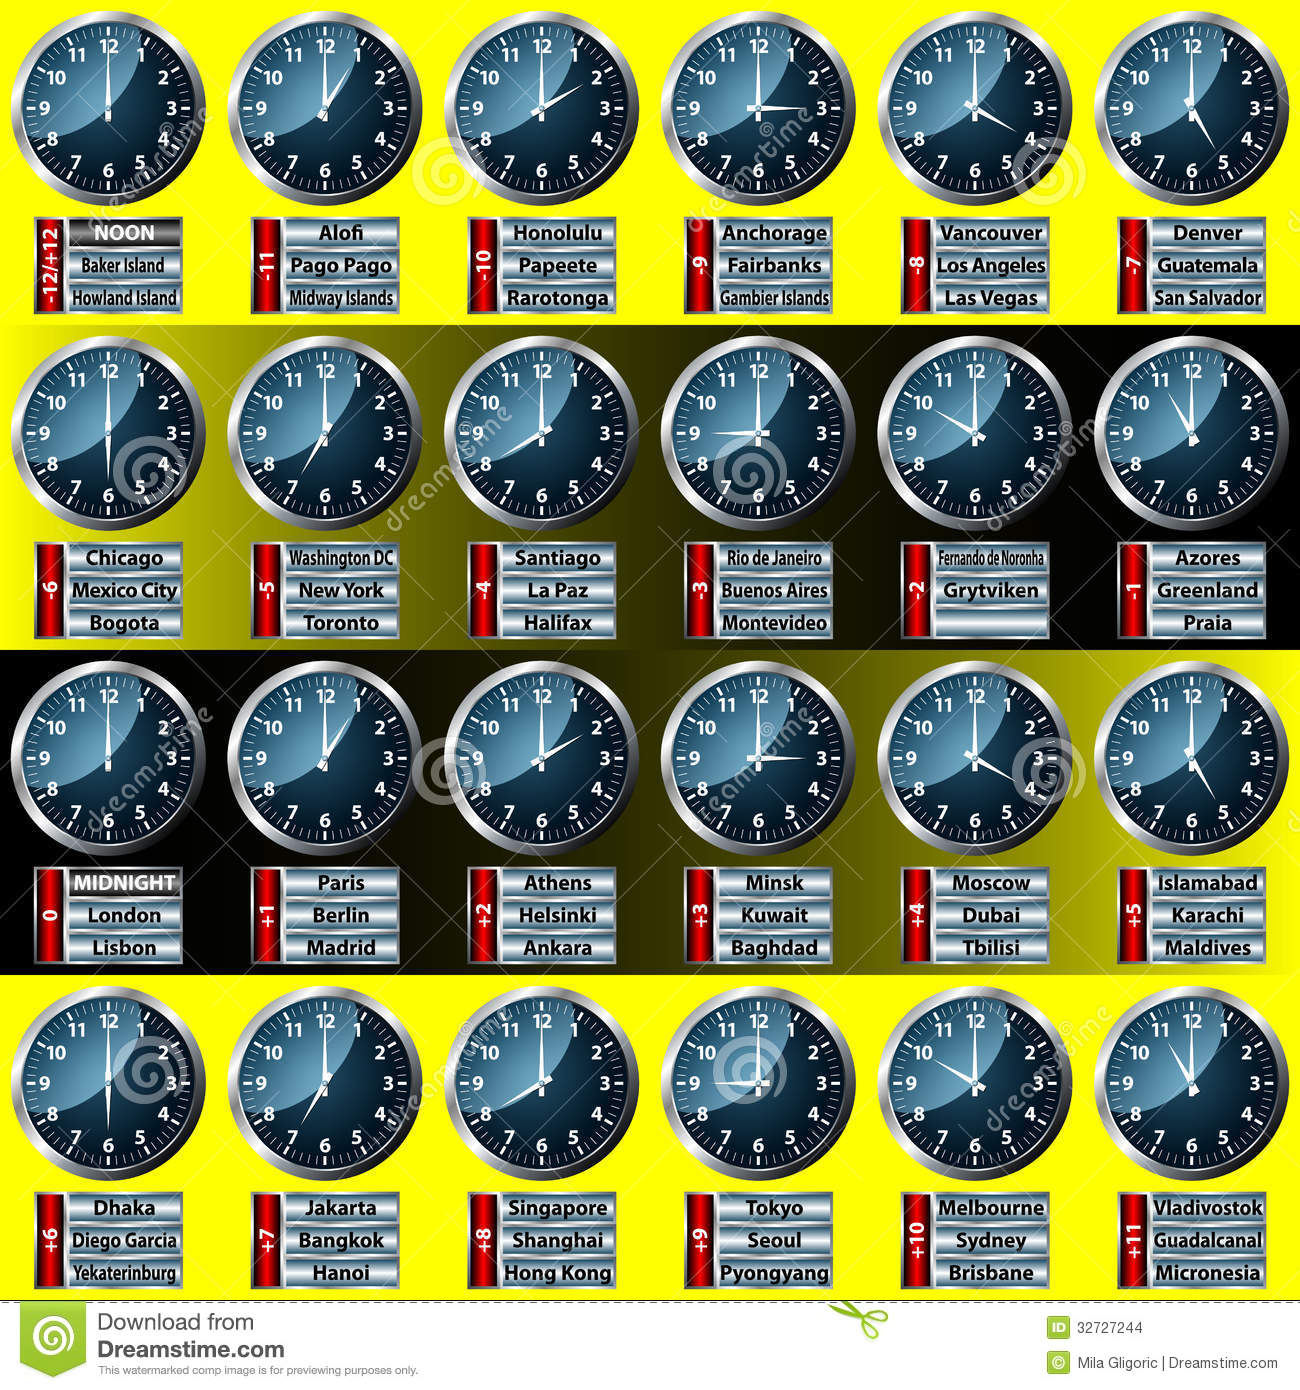 World Clock - Local Time World Time Time Zone & Weather